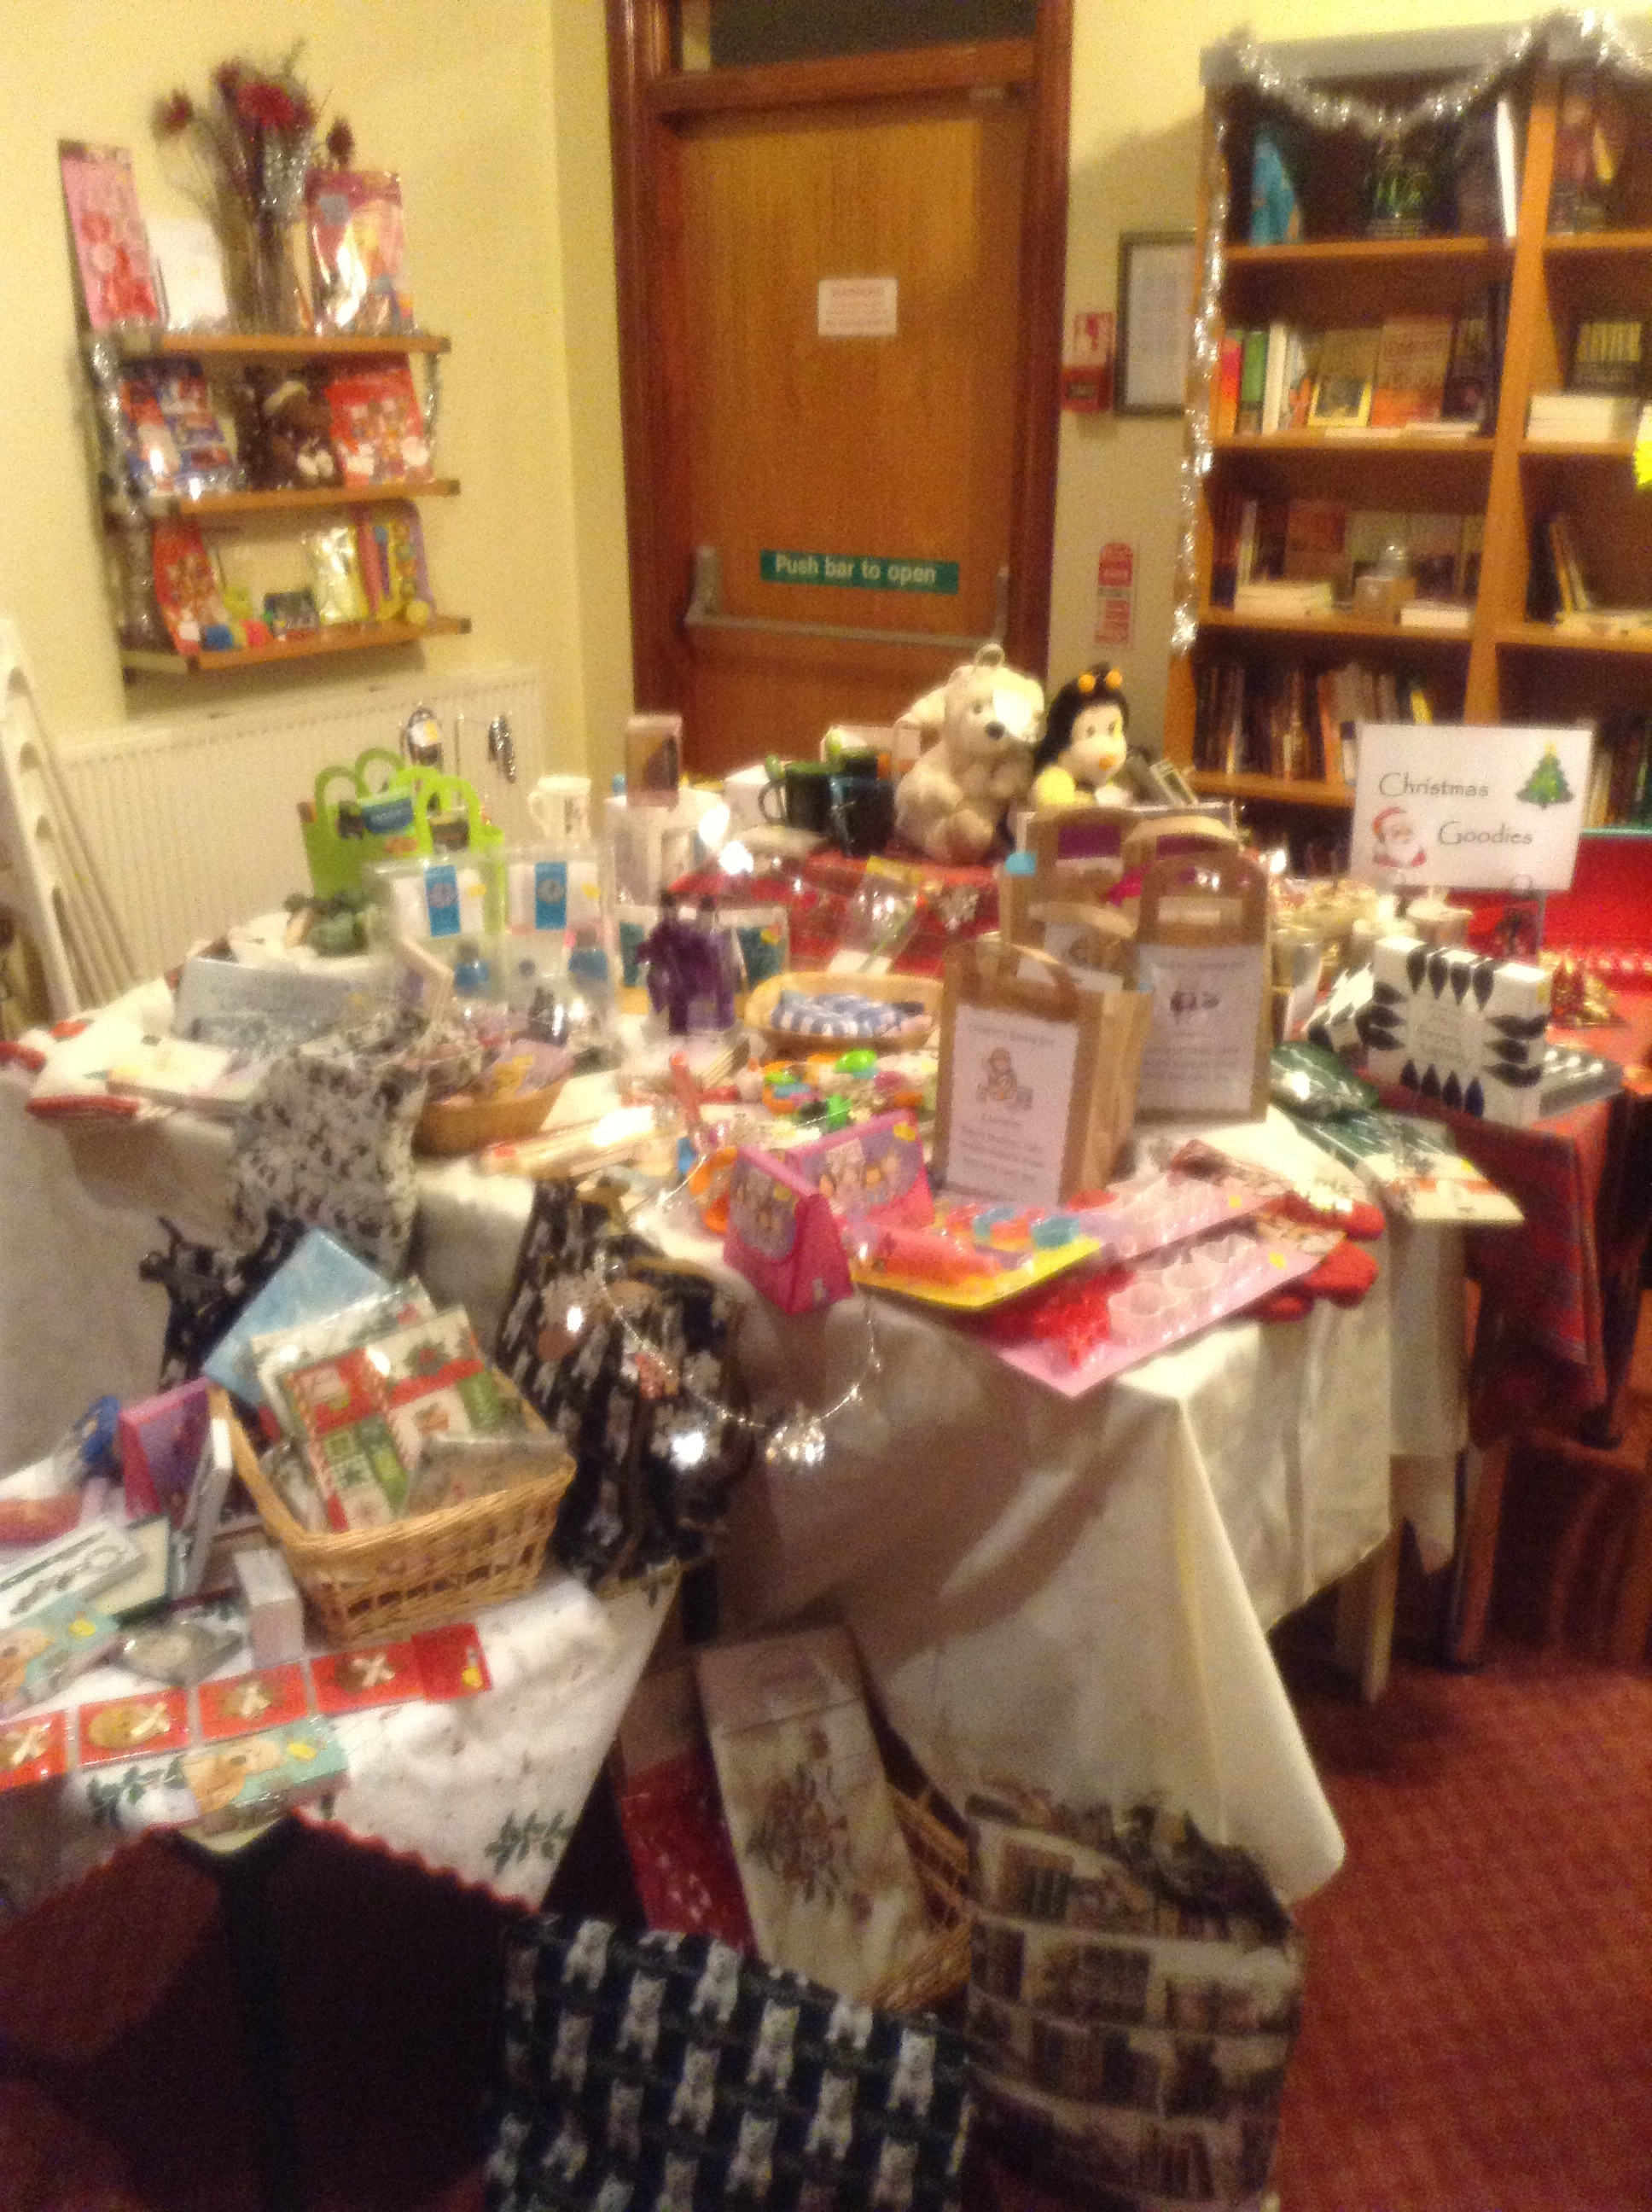 There were many gifts and crafts on offer.